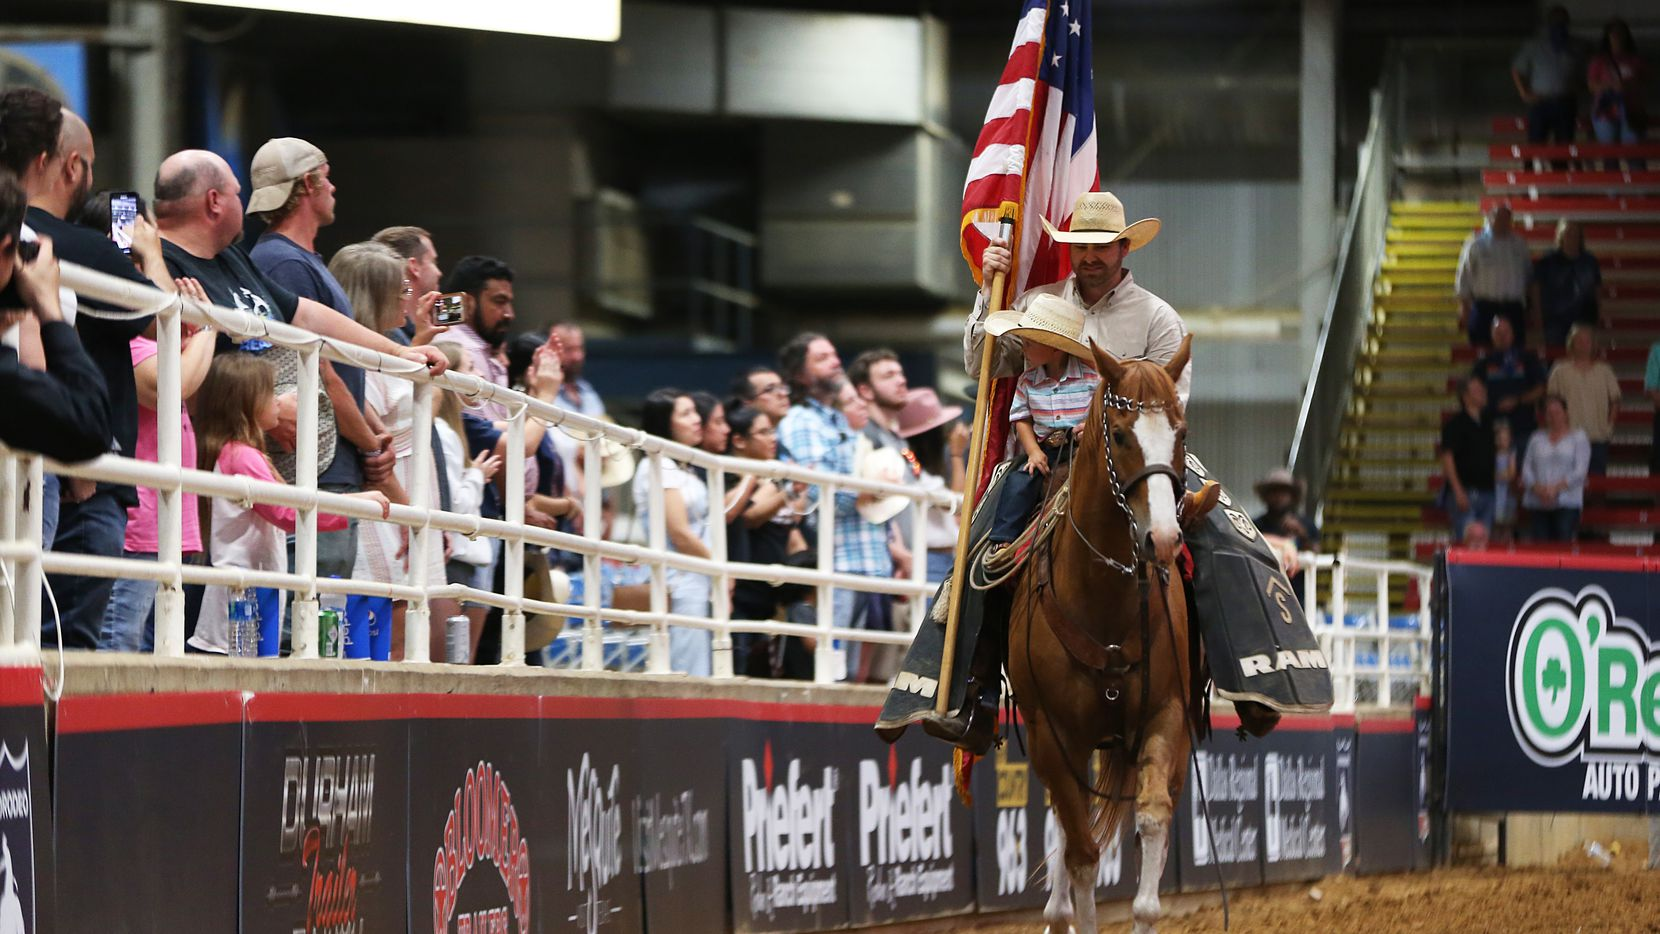 Rodeo fans enjoy show during the first day of competition for the Mesquite ProRodeo at Mesquite Arena last June. The city has canceled the annual Rodeo Parade for the second consecutive year because of COVID-19.